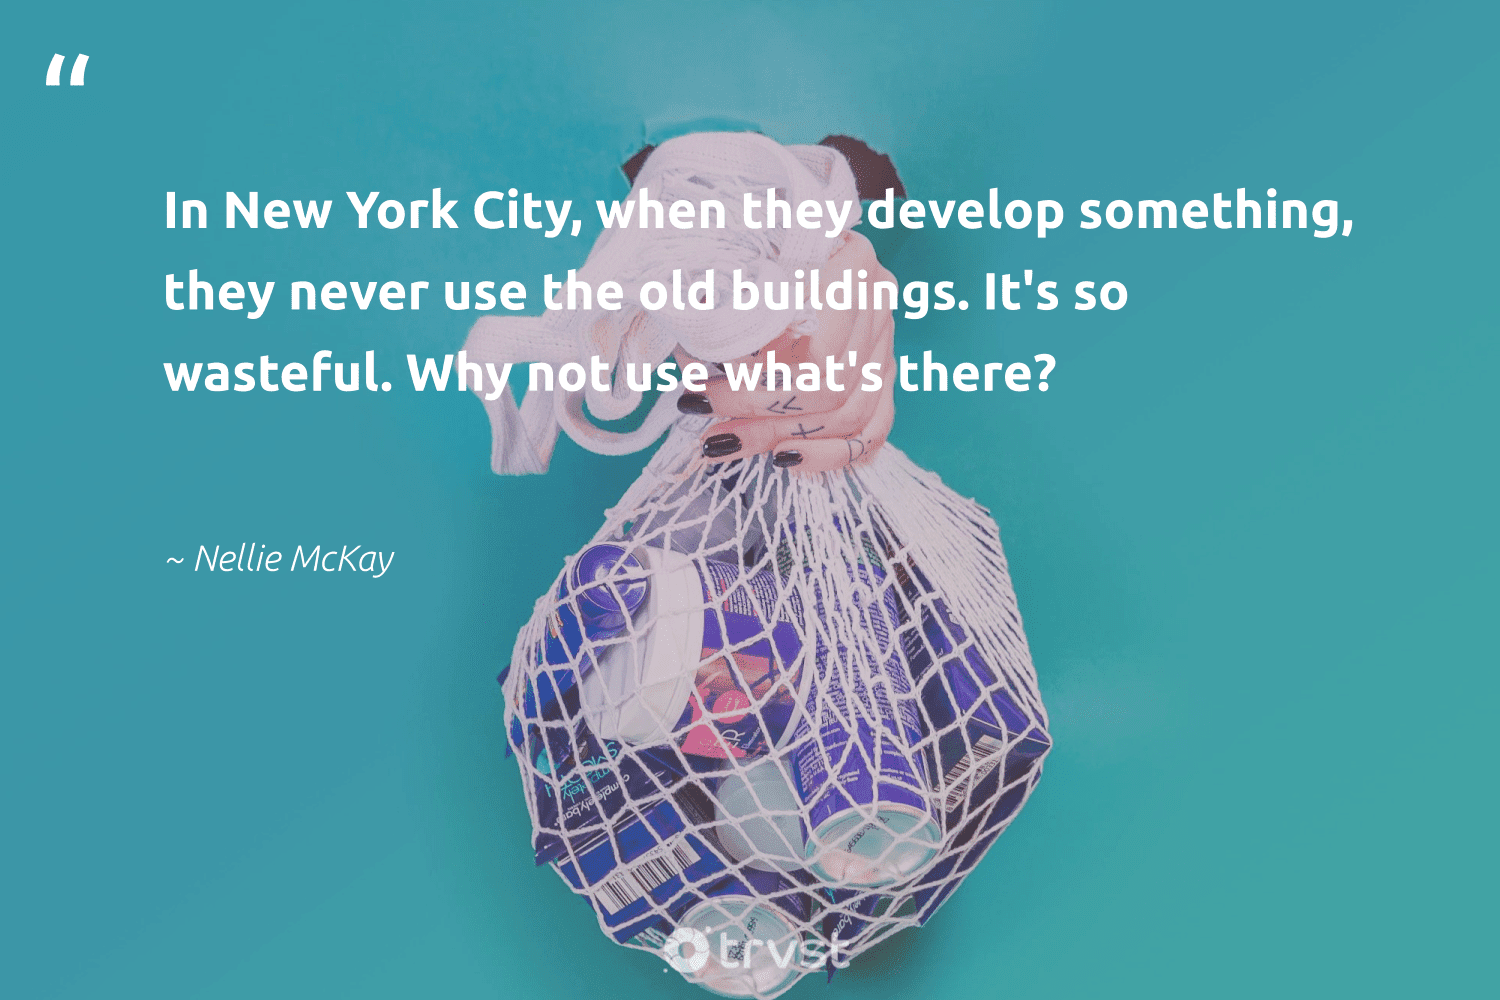 """""""In New York City, when they develop something, they never use the old buildings. It's so wasteful. Why not use what's there?""""  - Nellie McKay #trvst #quotes #green #planetearthfirst #gogreen #bethechange #greenliving #dosomething #sustainable #dotherightthing #fashion #beinspired"""